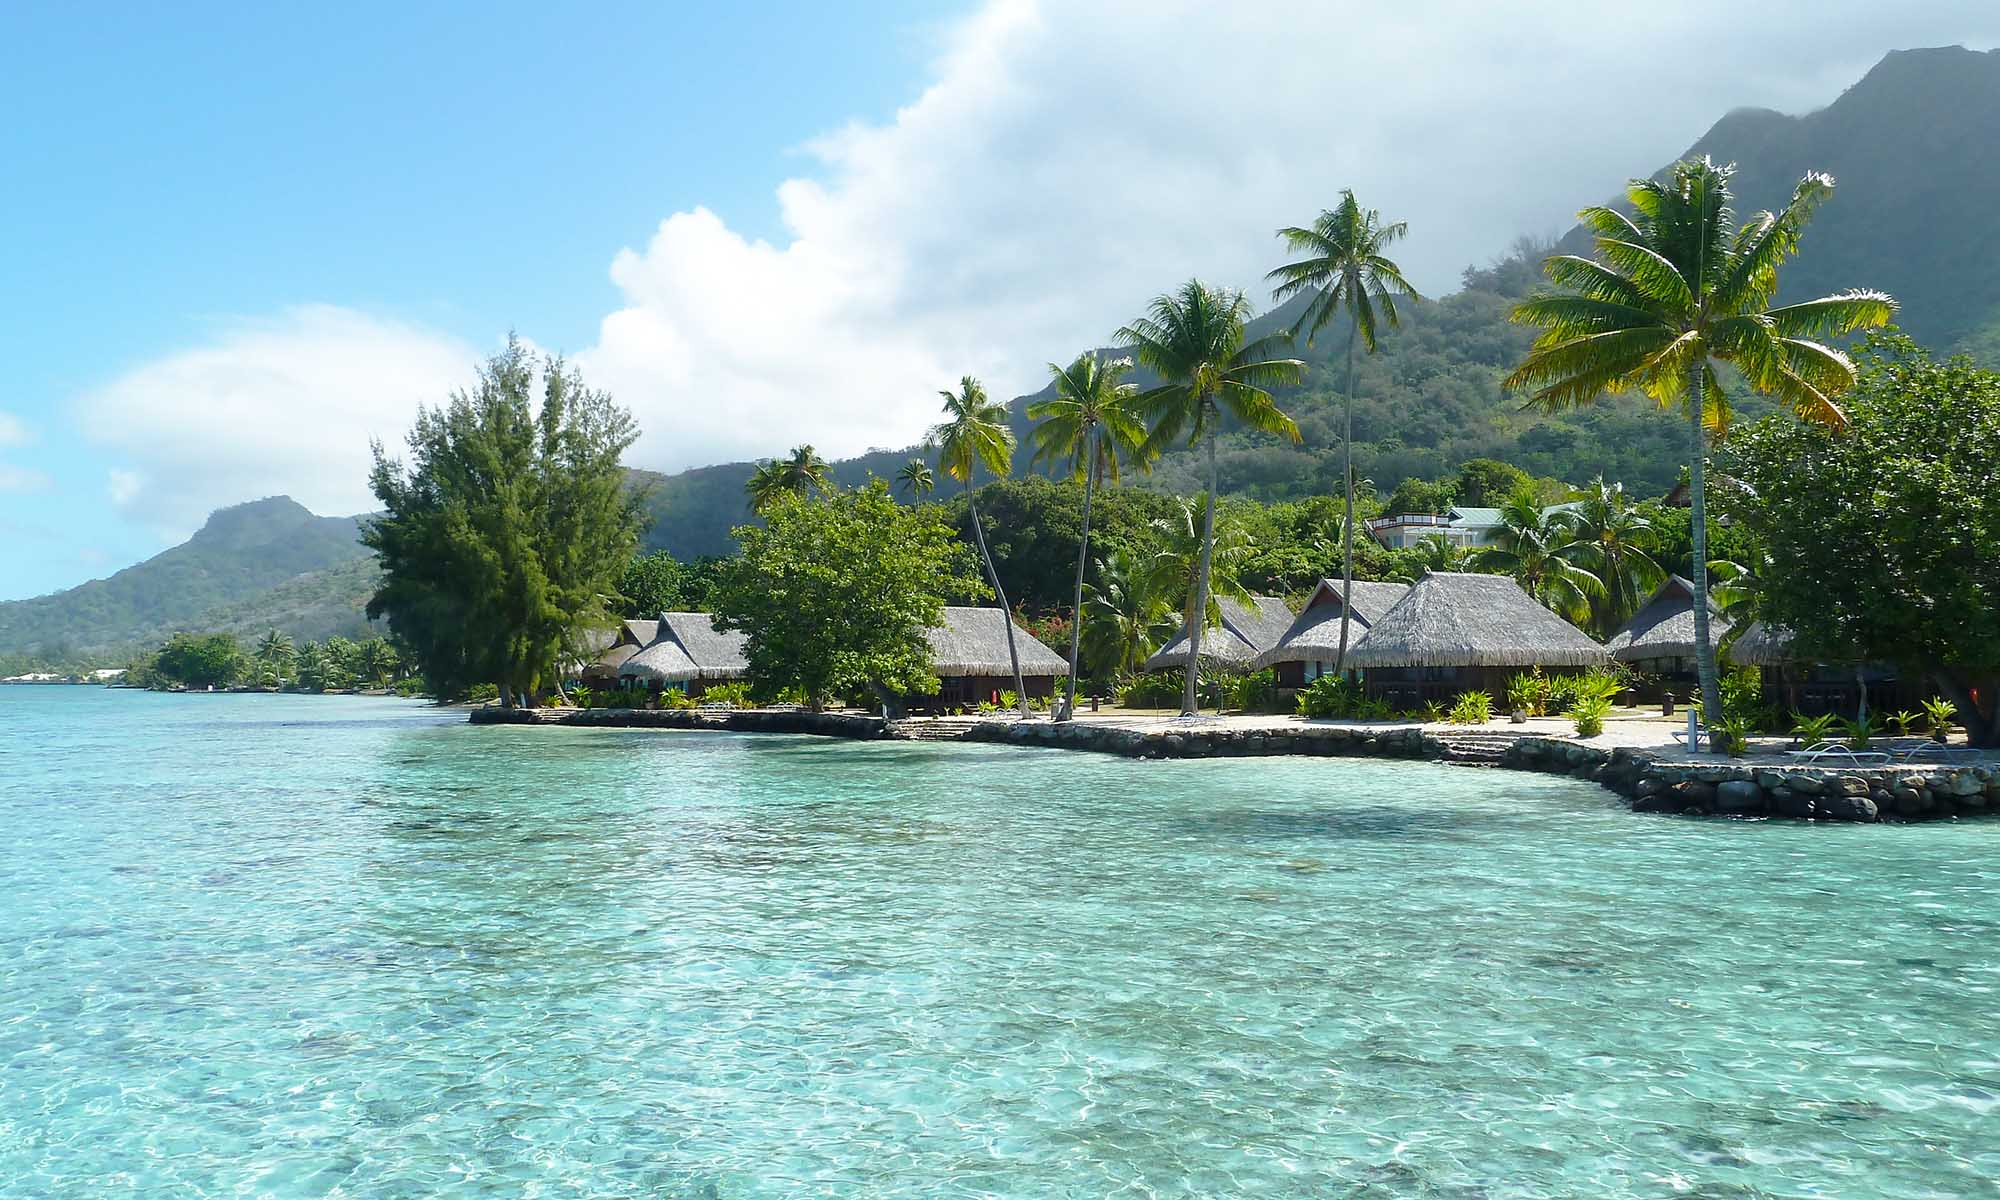 Sofitel Moorea Ia Ora Beach Resort, Lagoon Bungalows